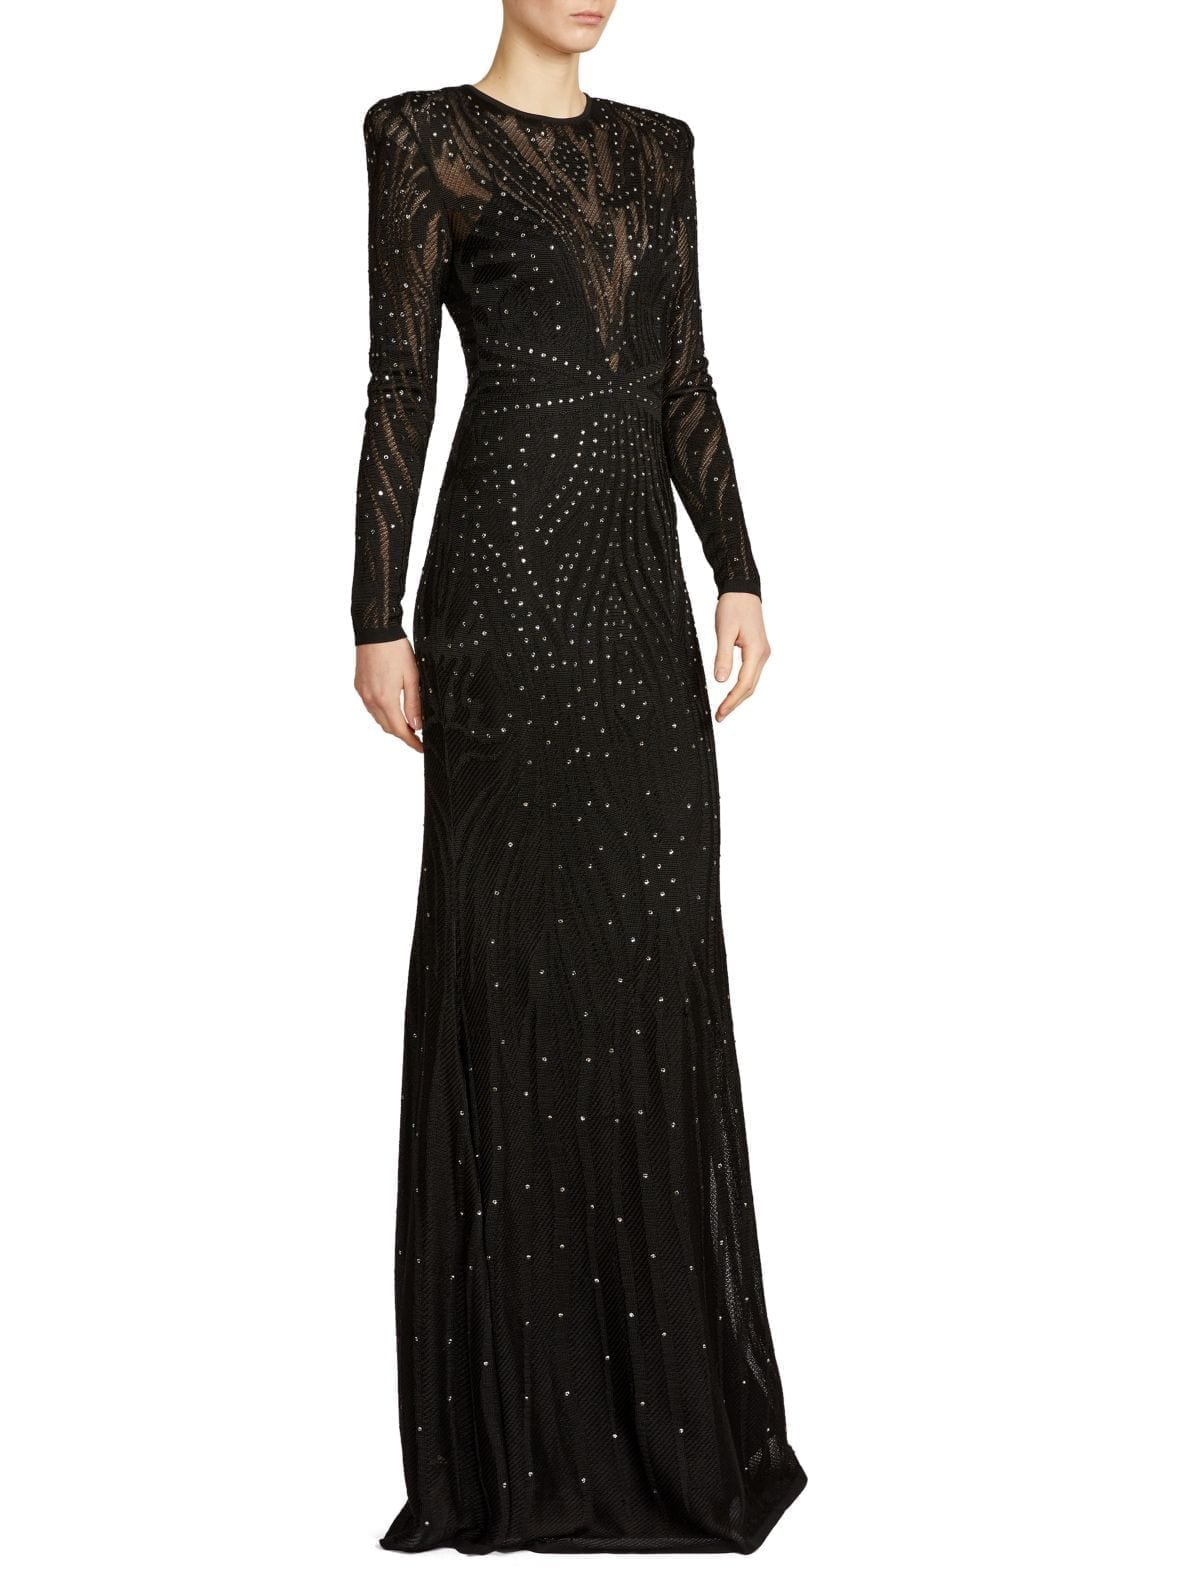 ZUHAIR MURAD Studded Sheer Gown